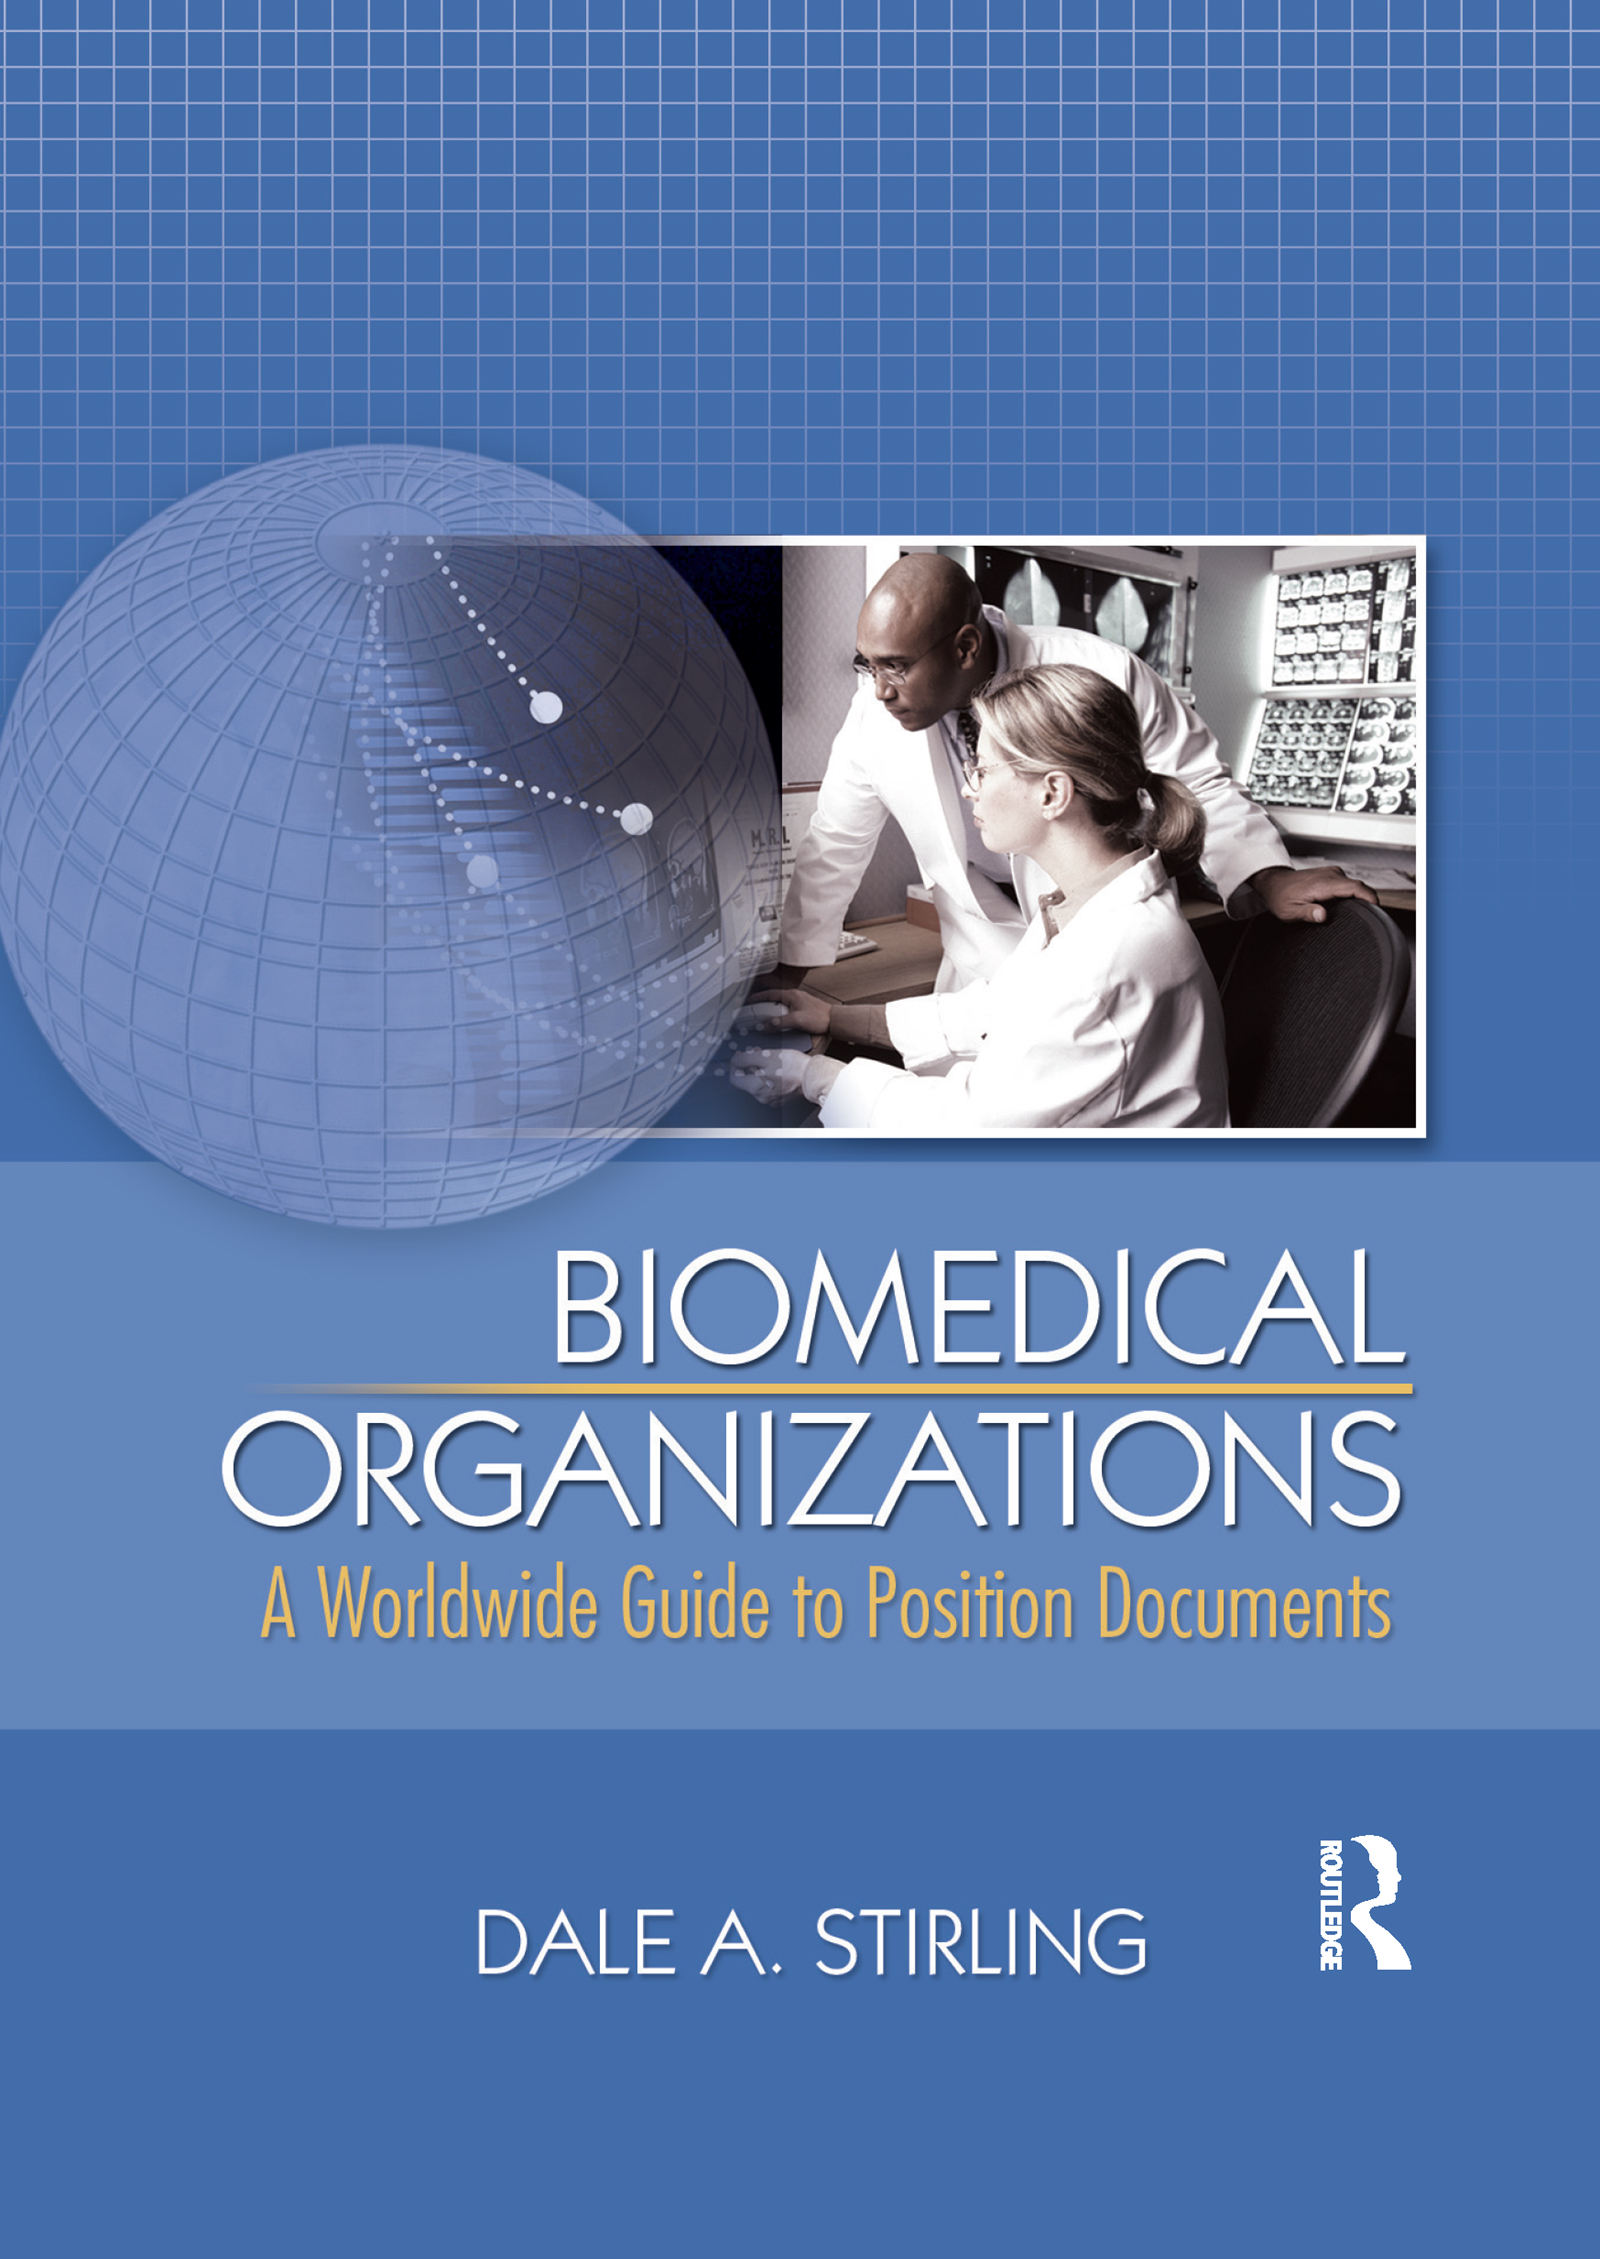 Biomedical Organizations: A Worldwide Guide to Position Documents book cover